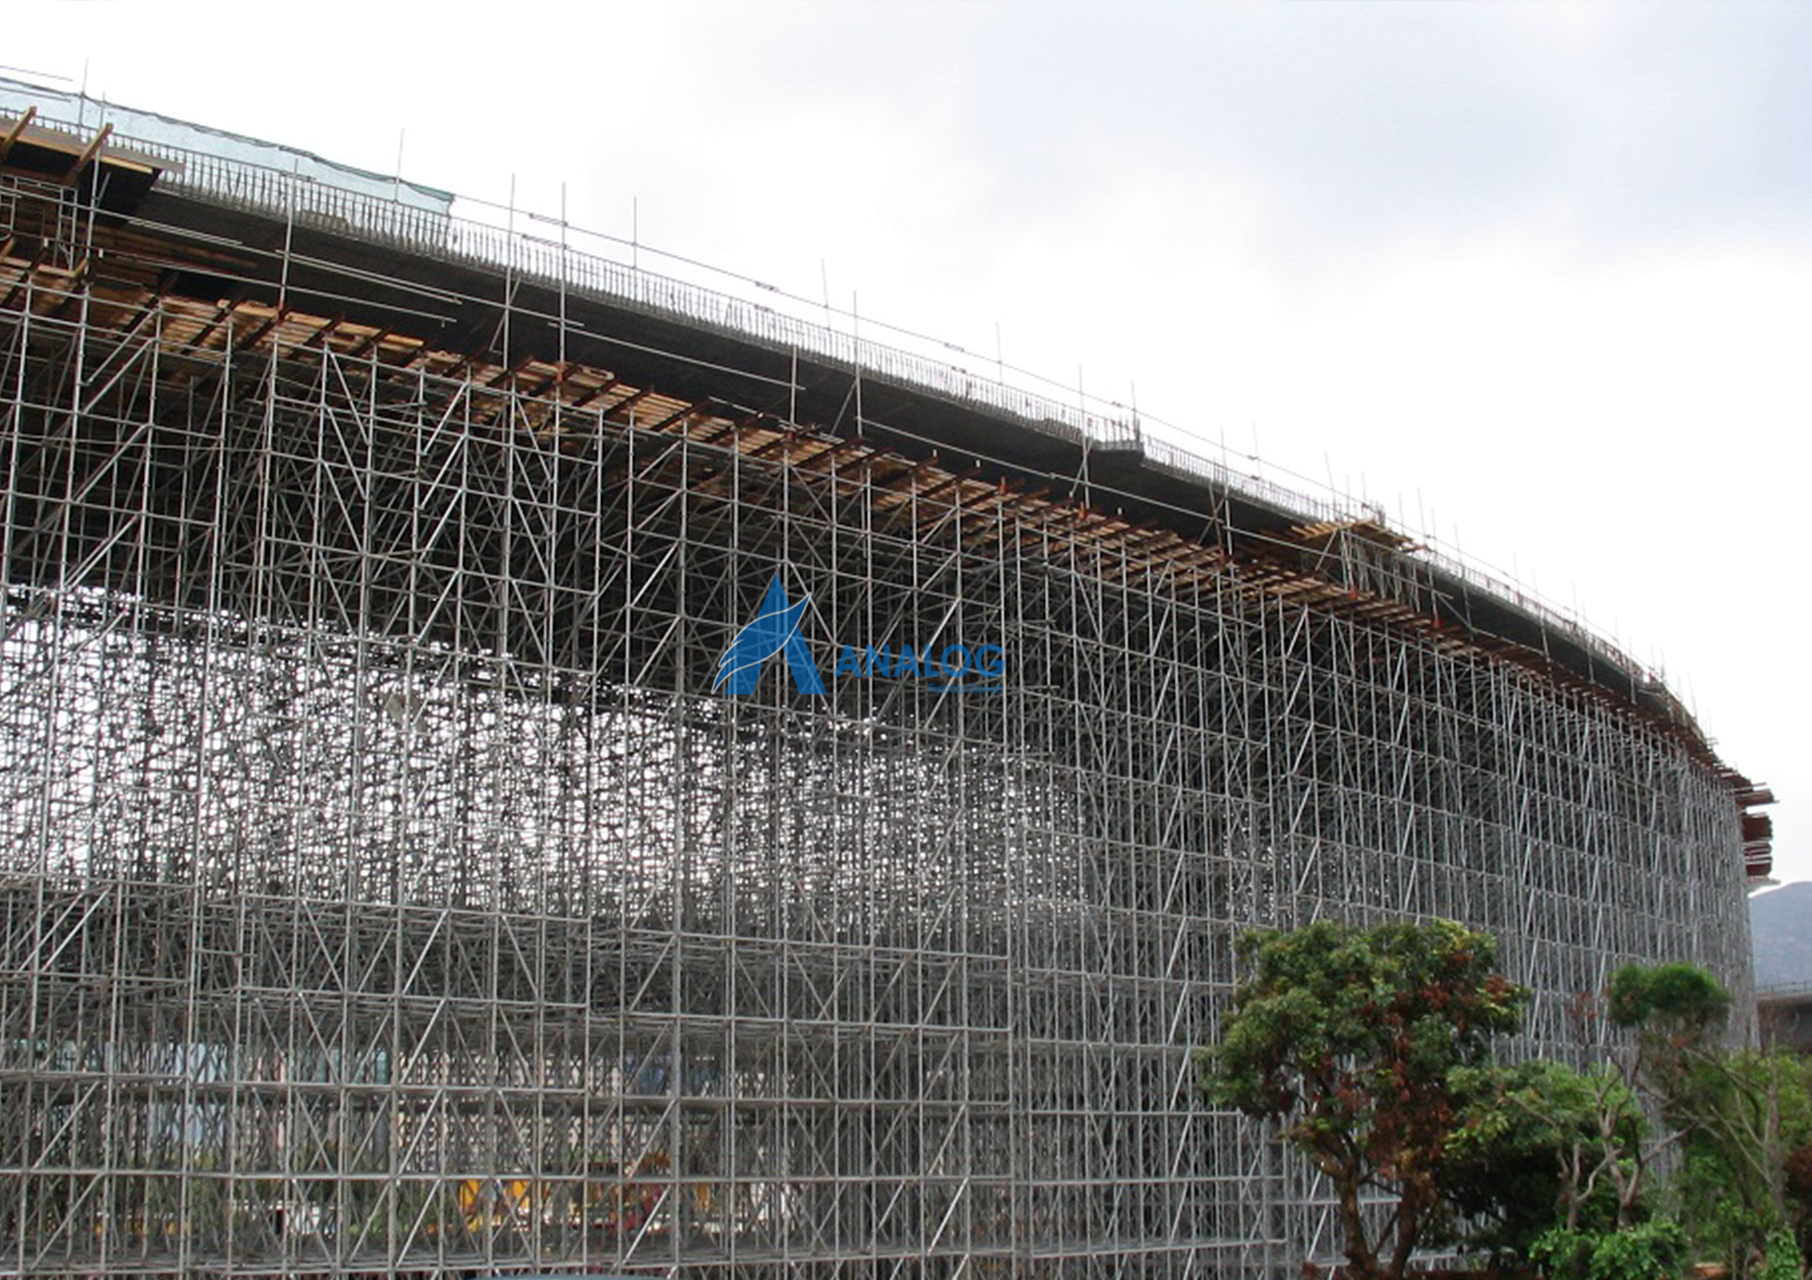 Scaffolding for heavy support for shoring